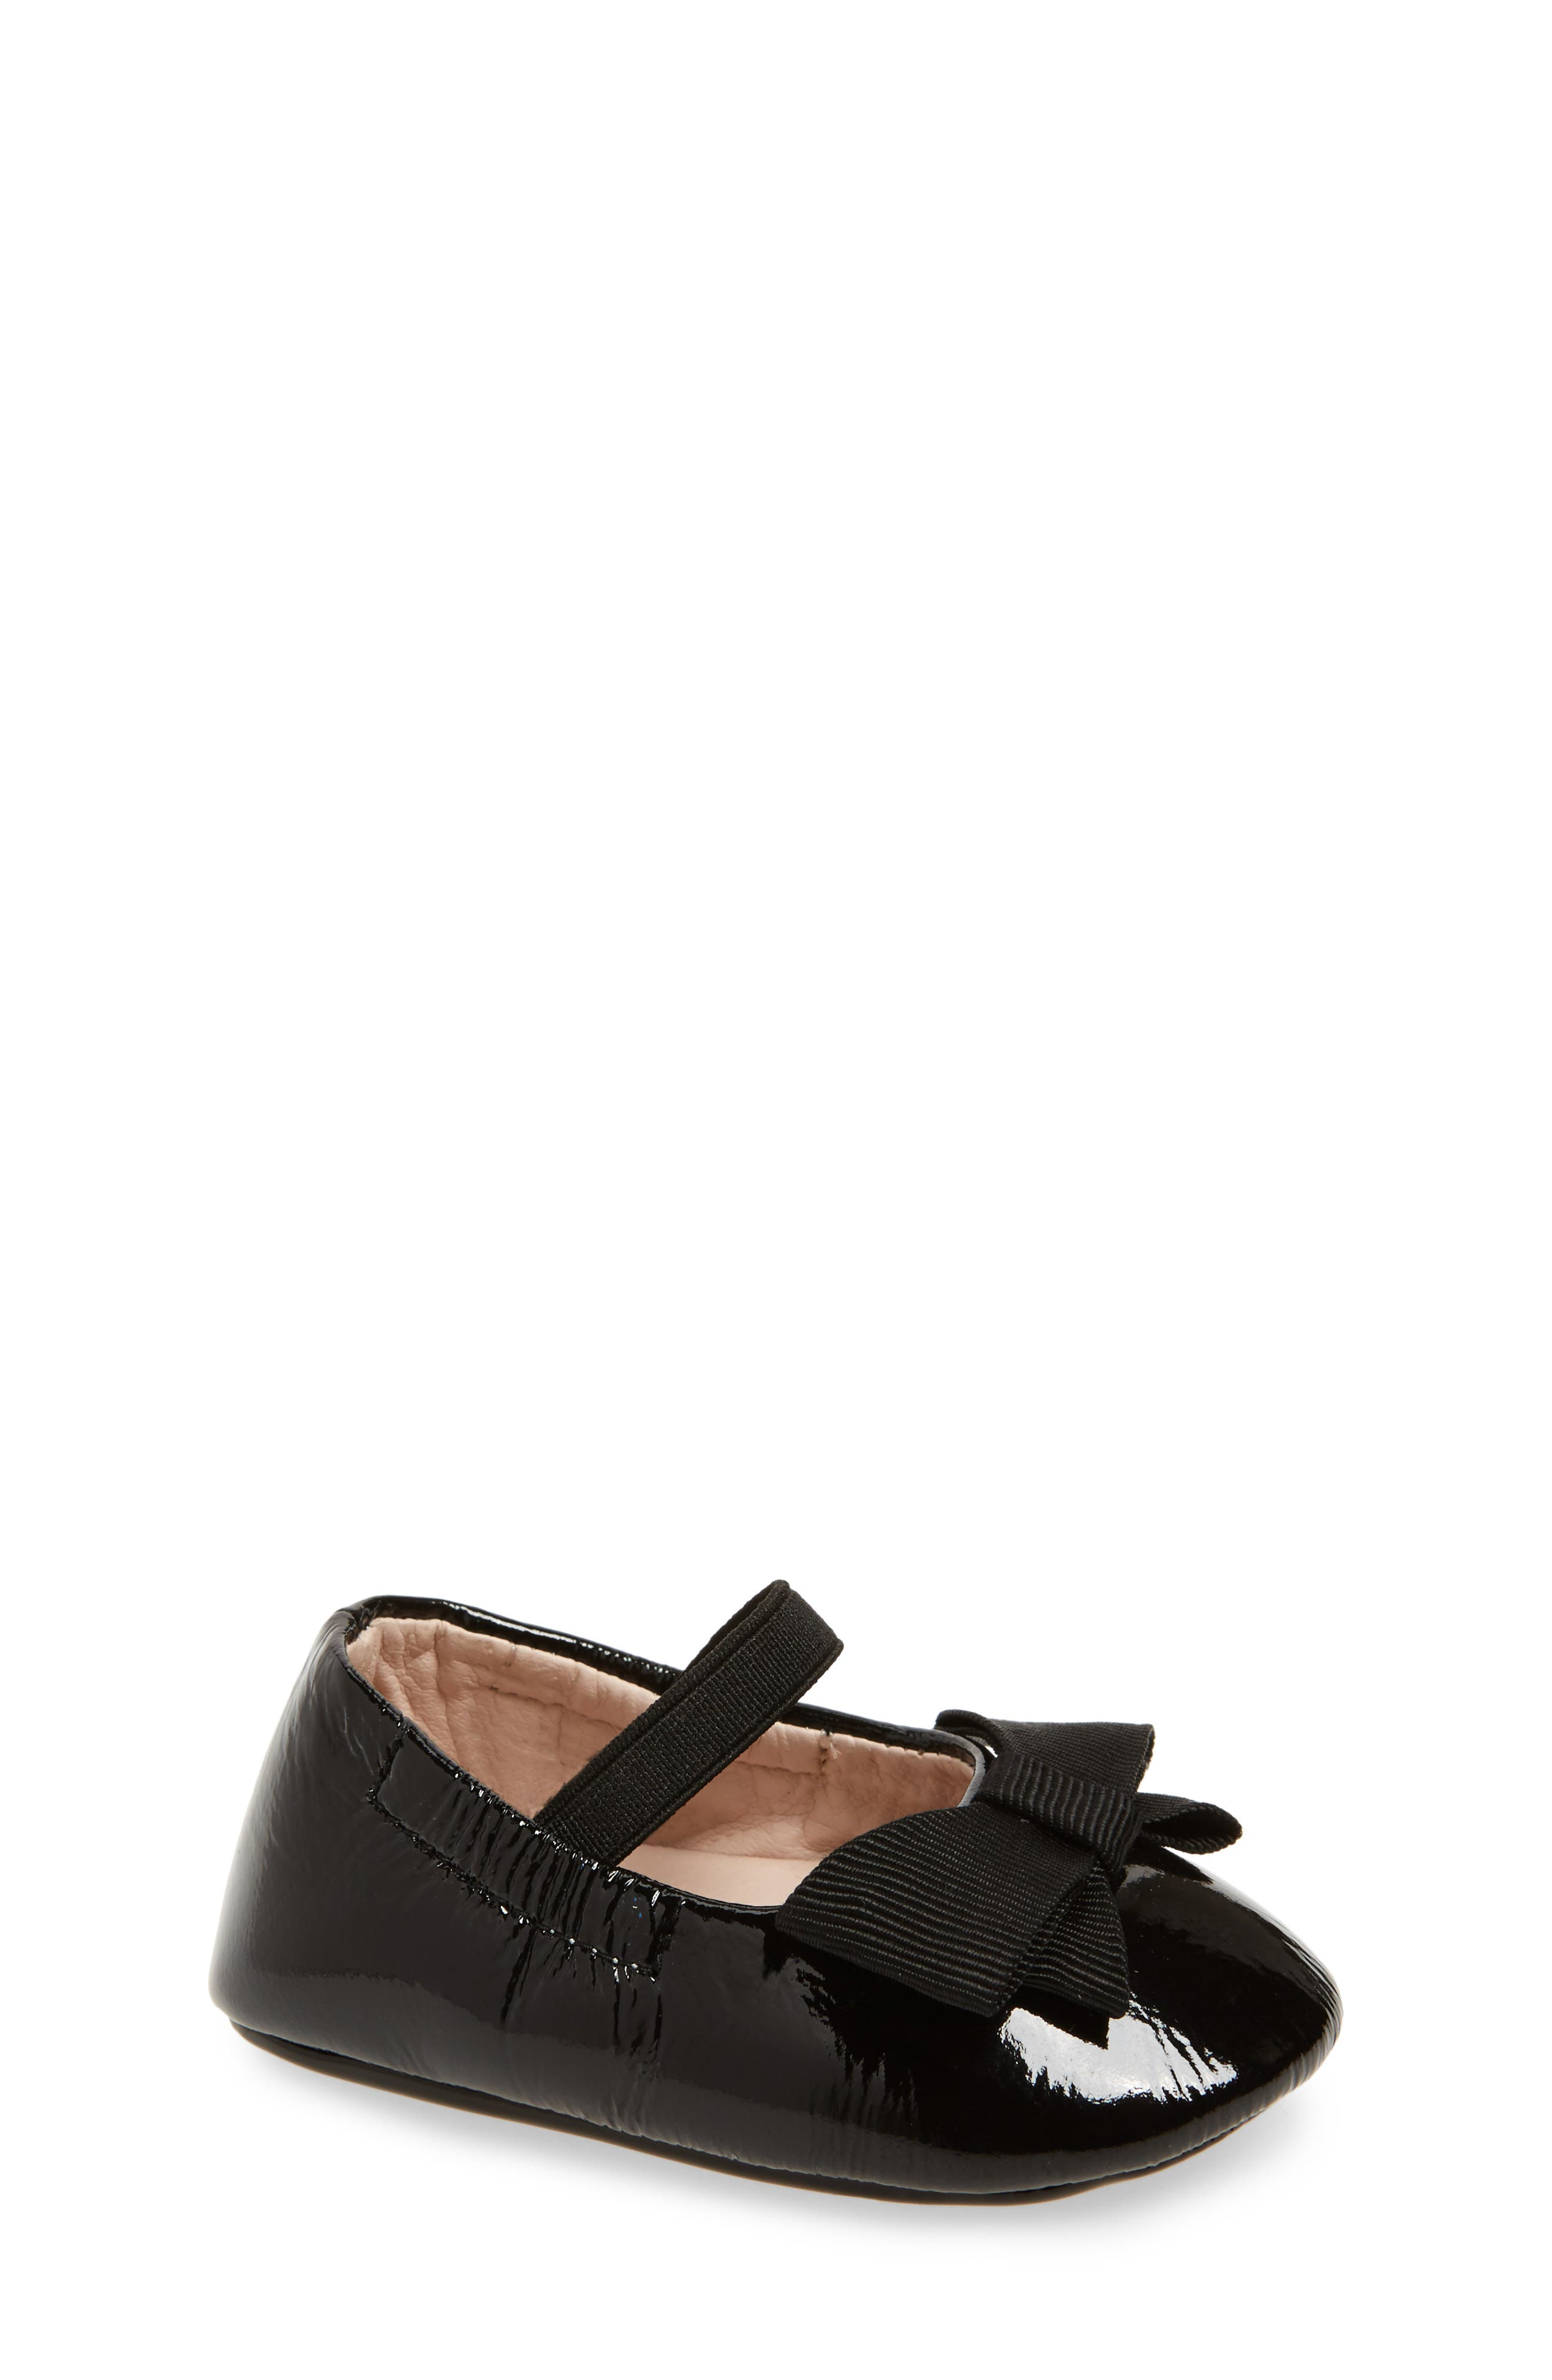 Lilia Mary Jane Flat,                         Main,                         color, Black Patent Leather